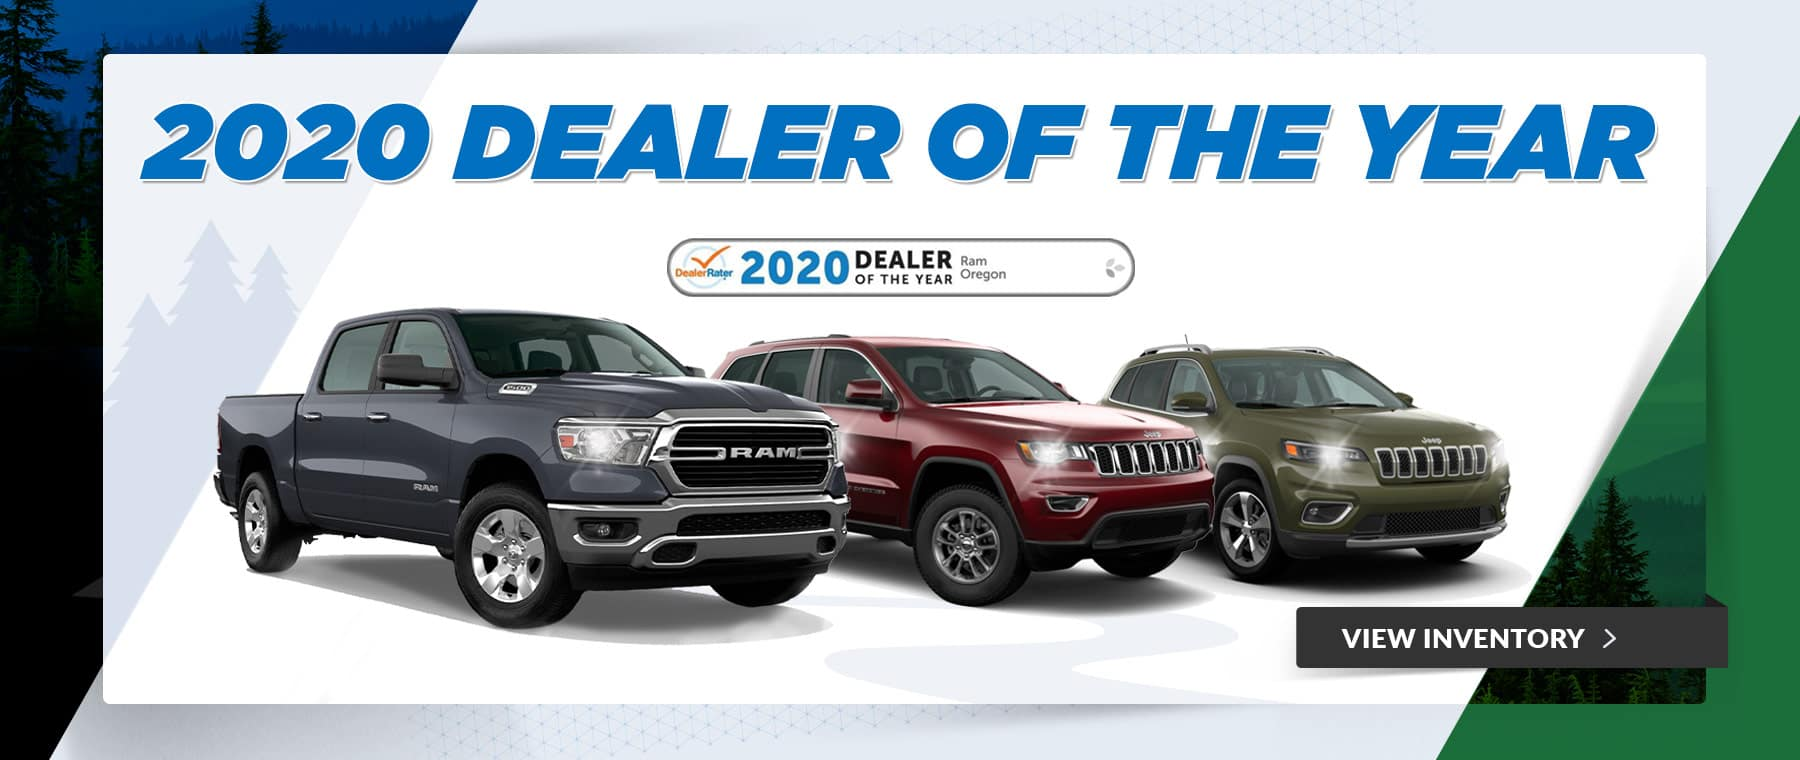 WilsonvilleCDJR_1800x760_2020DealerAward_01-20